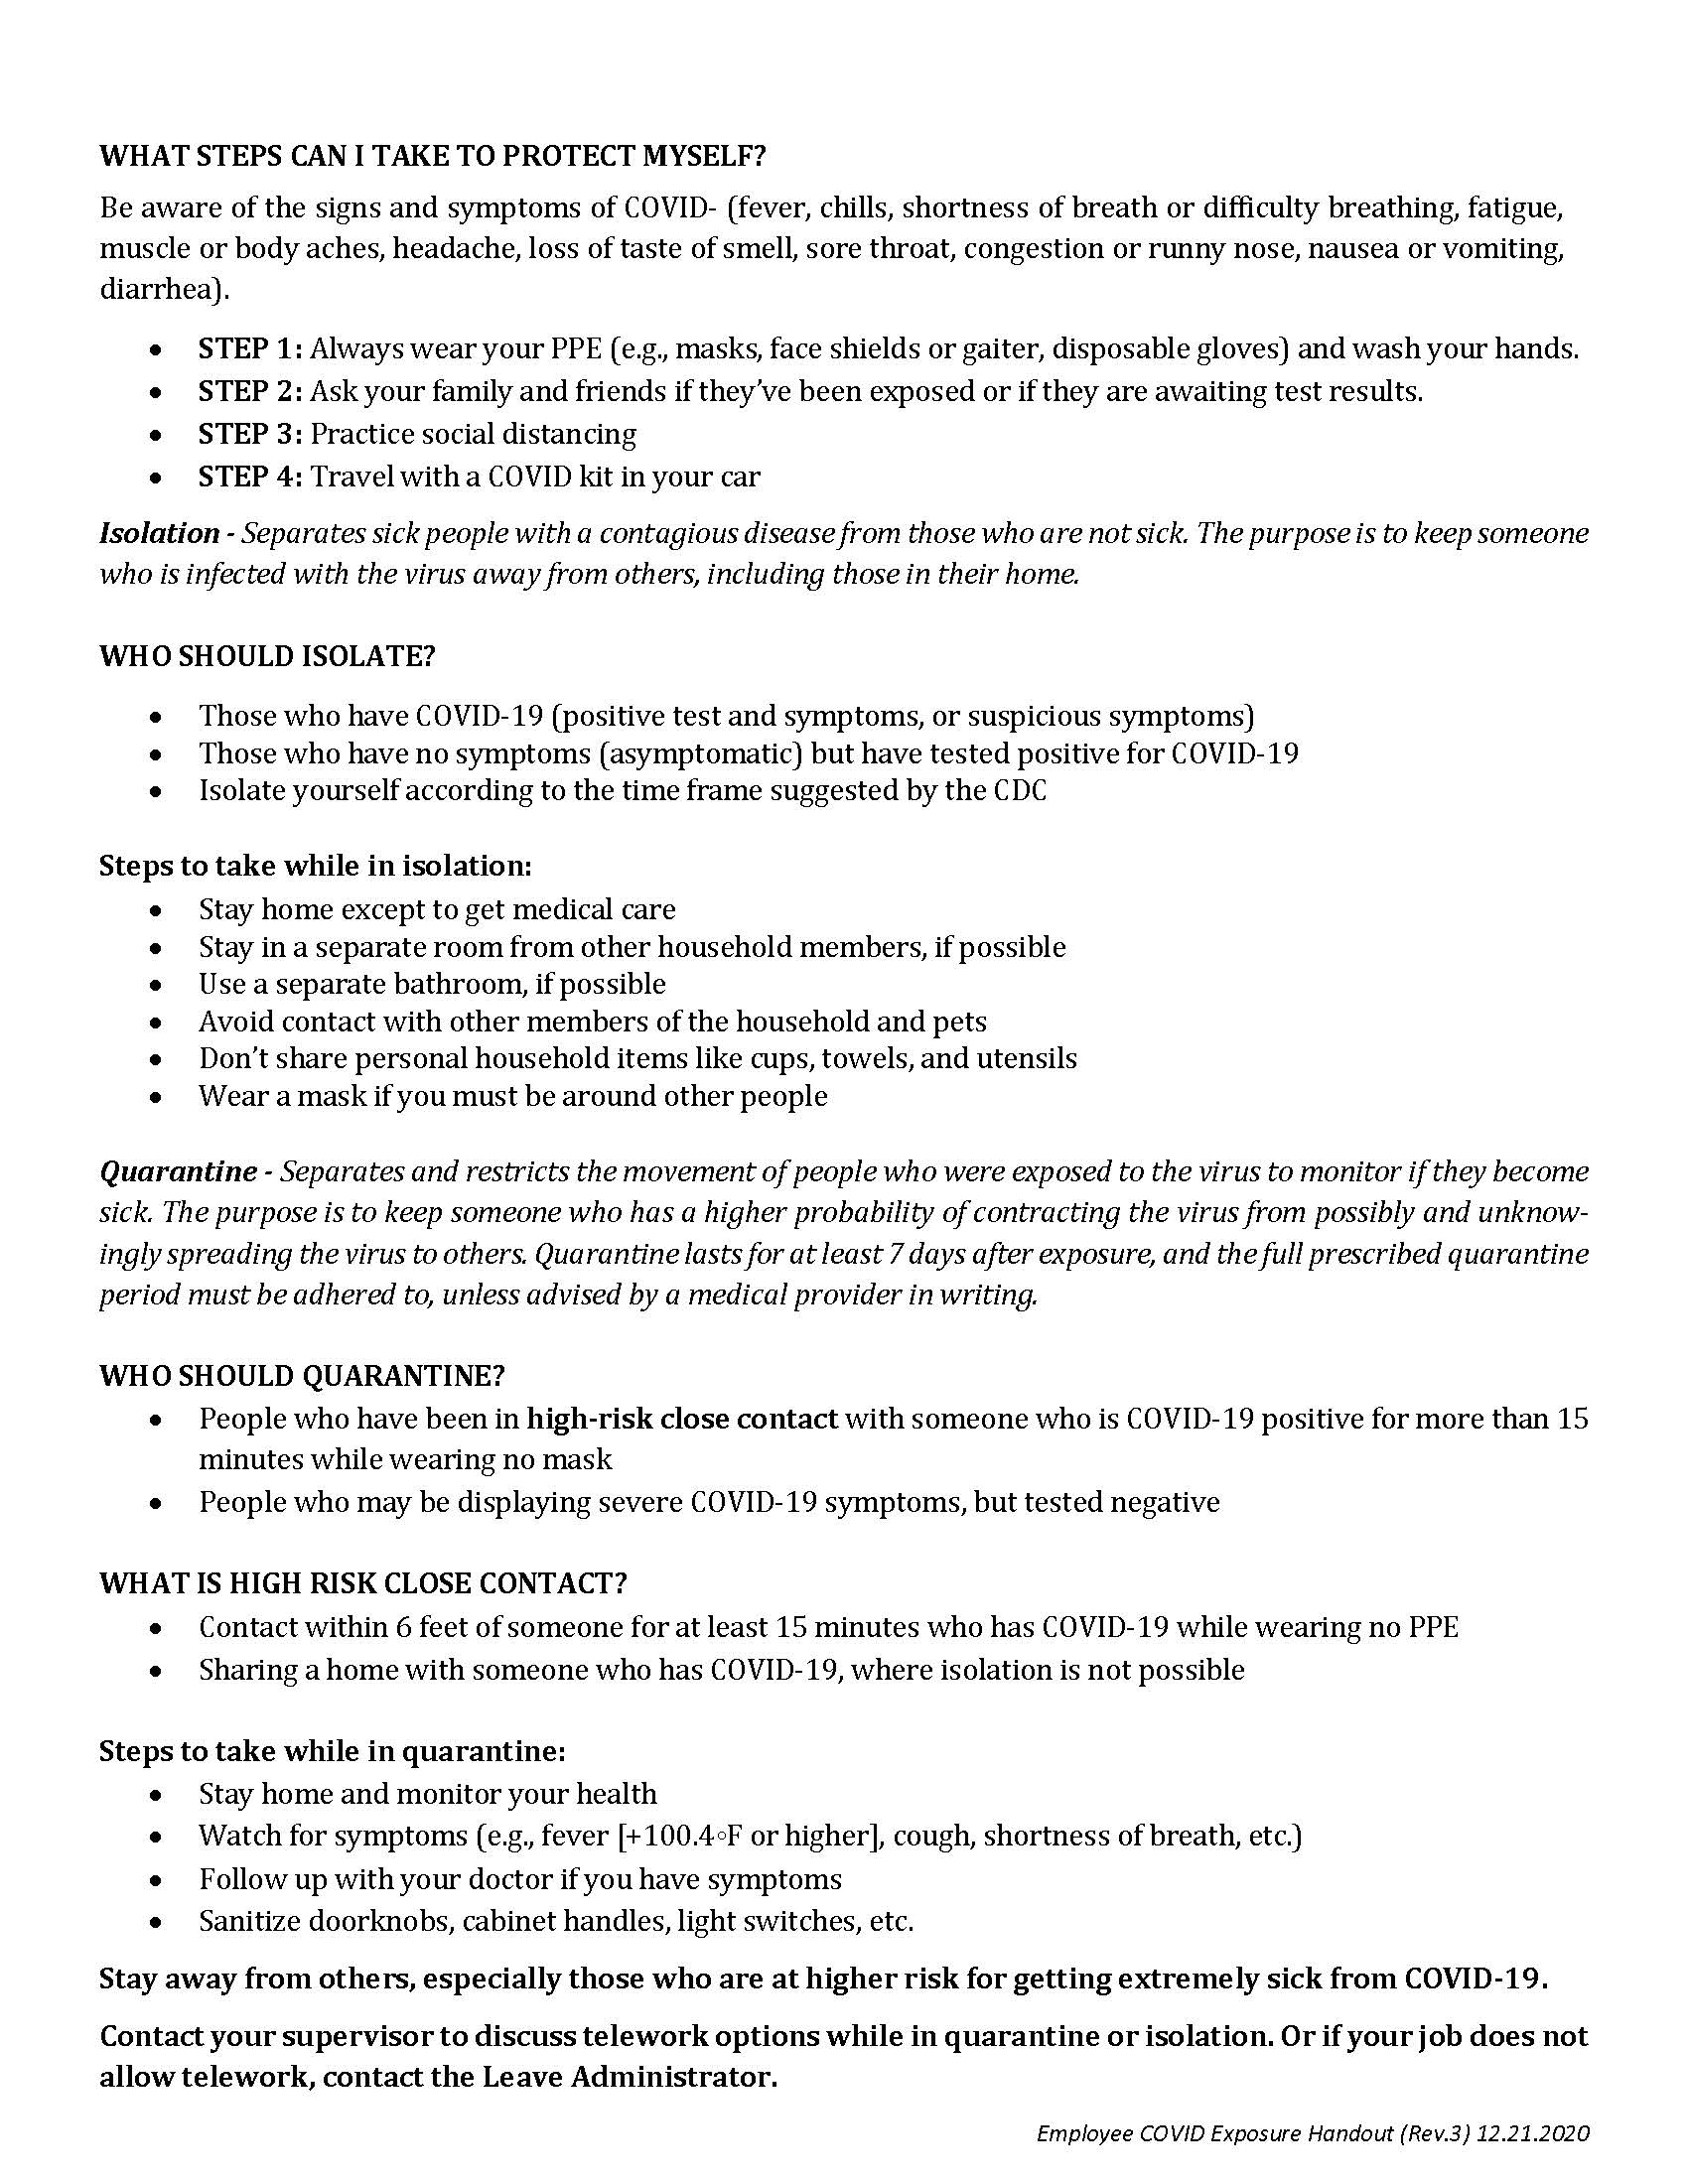 COVID Handout Page 2 (12.21.20)